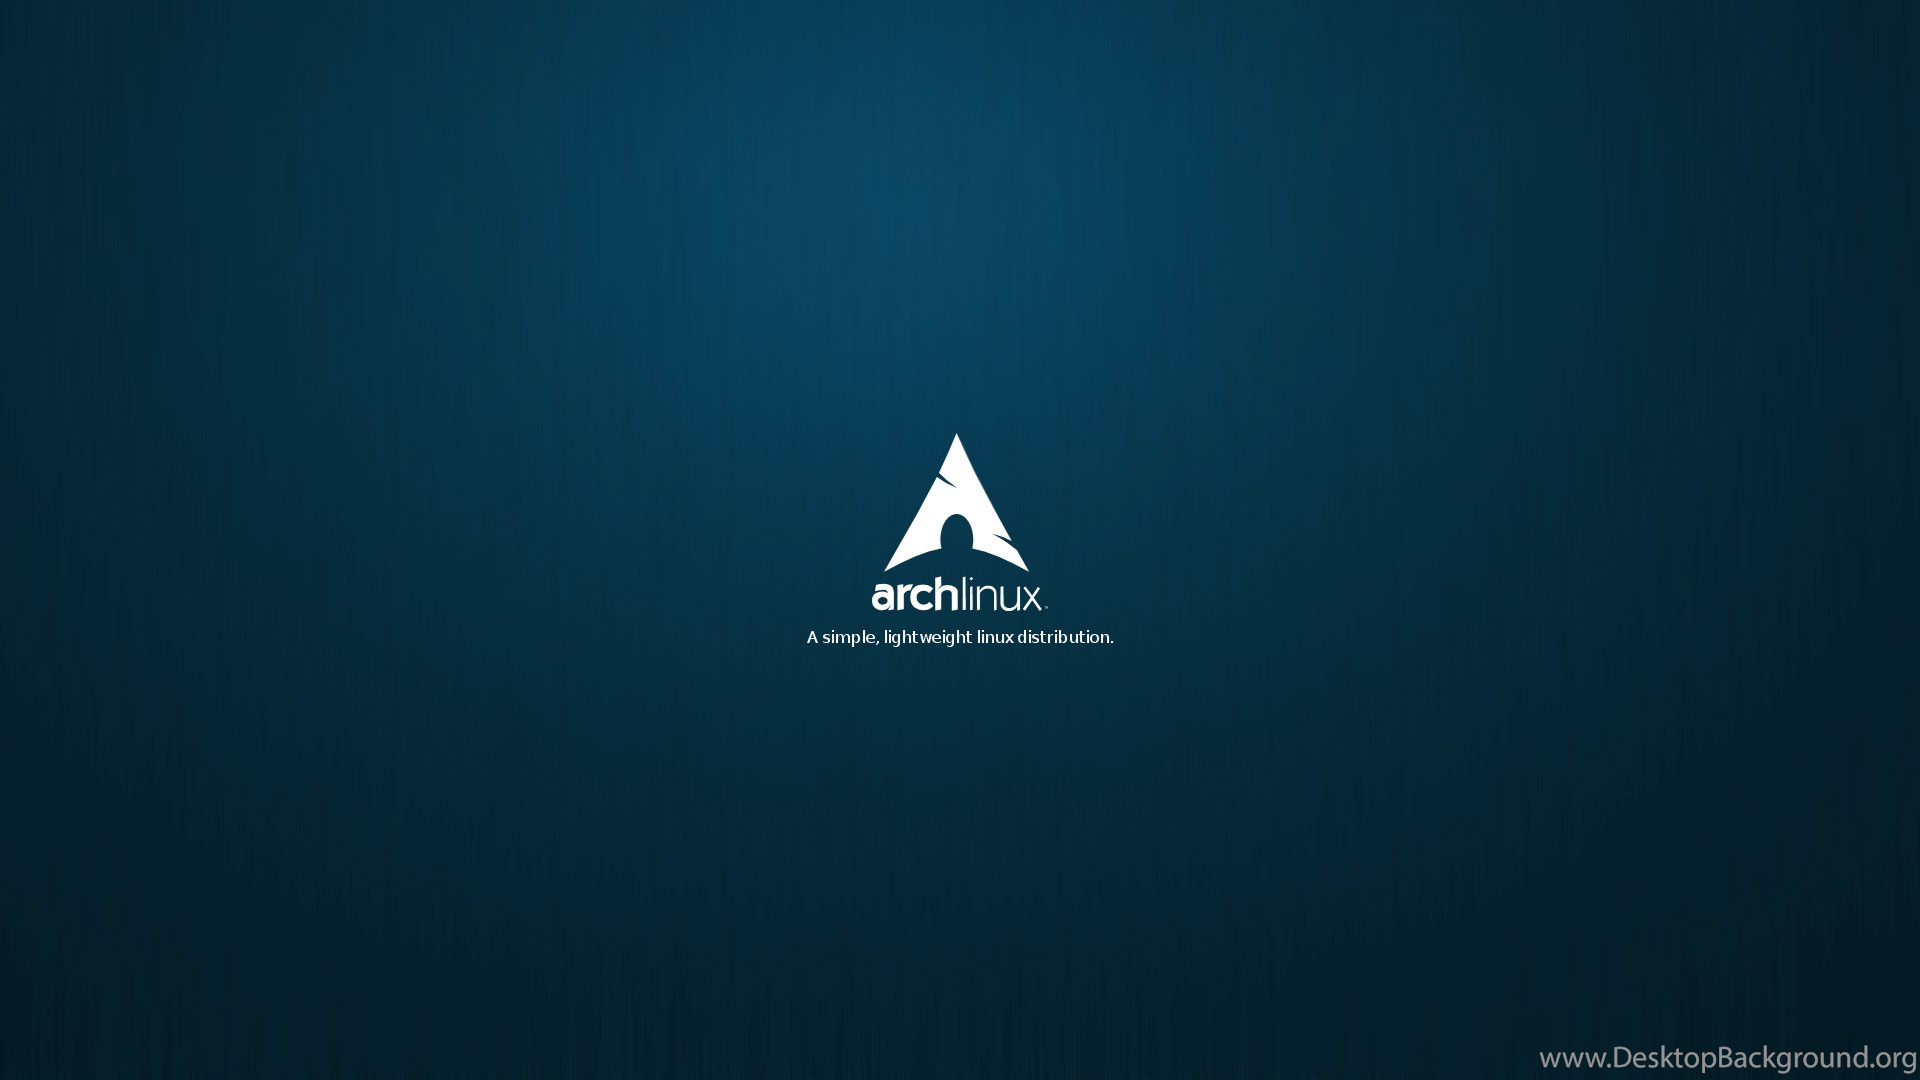 Arch Linux Wallpapers Wallpapers Zone Desktop Background